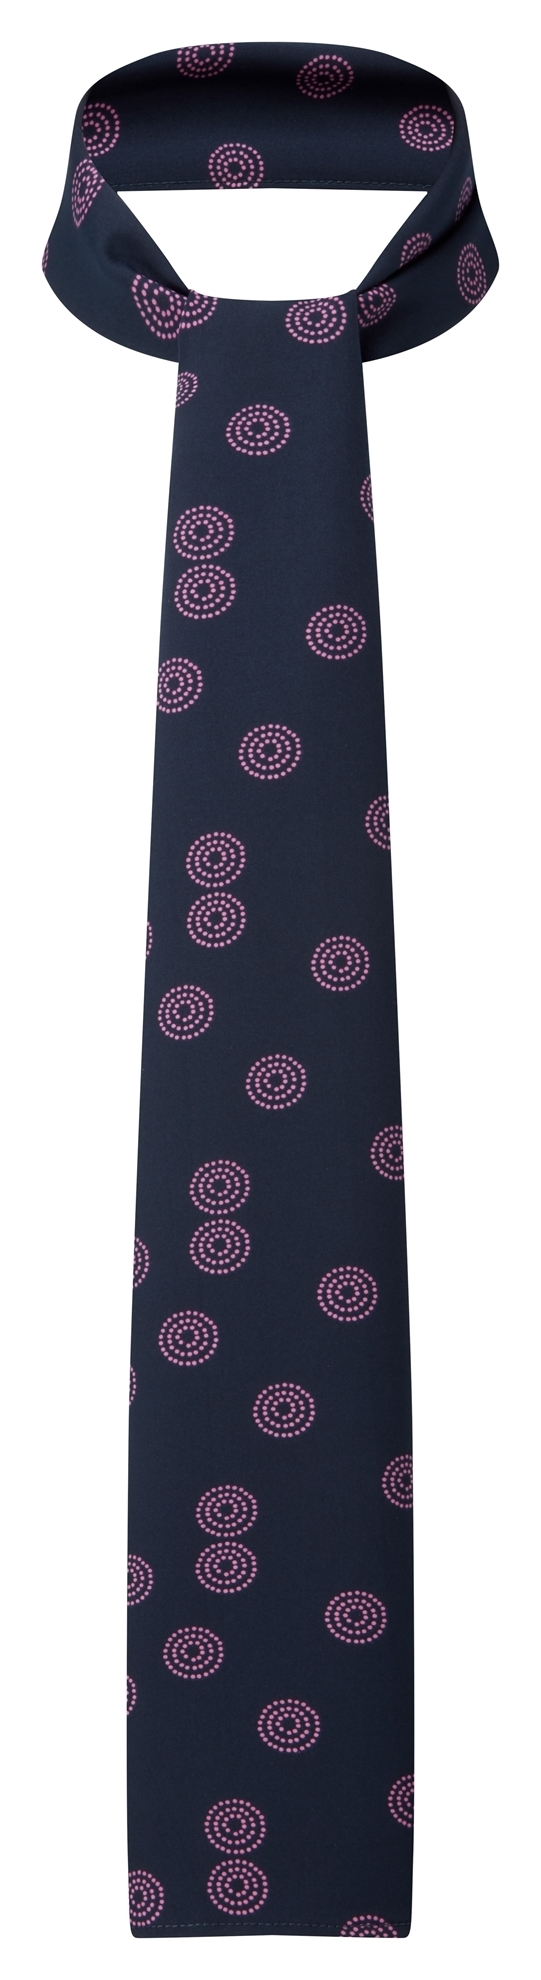 Picture of Long Scarf - Navy/Pink Sienna Print